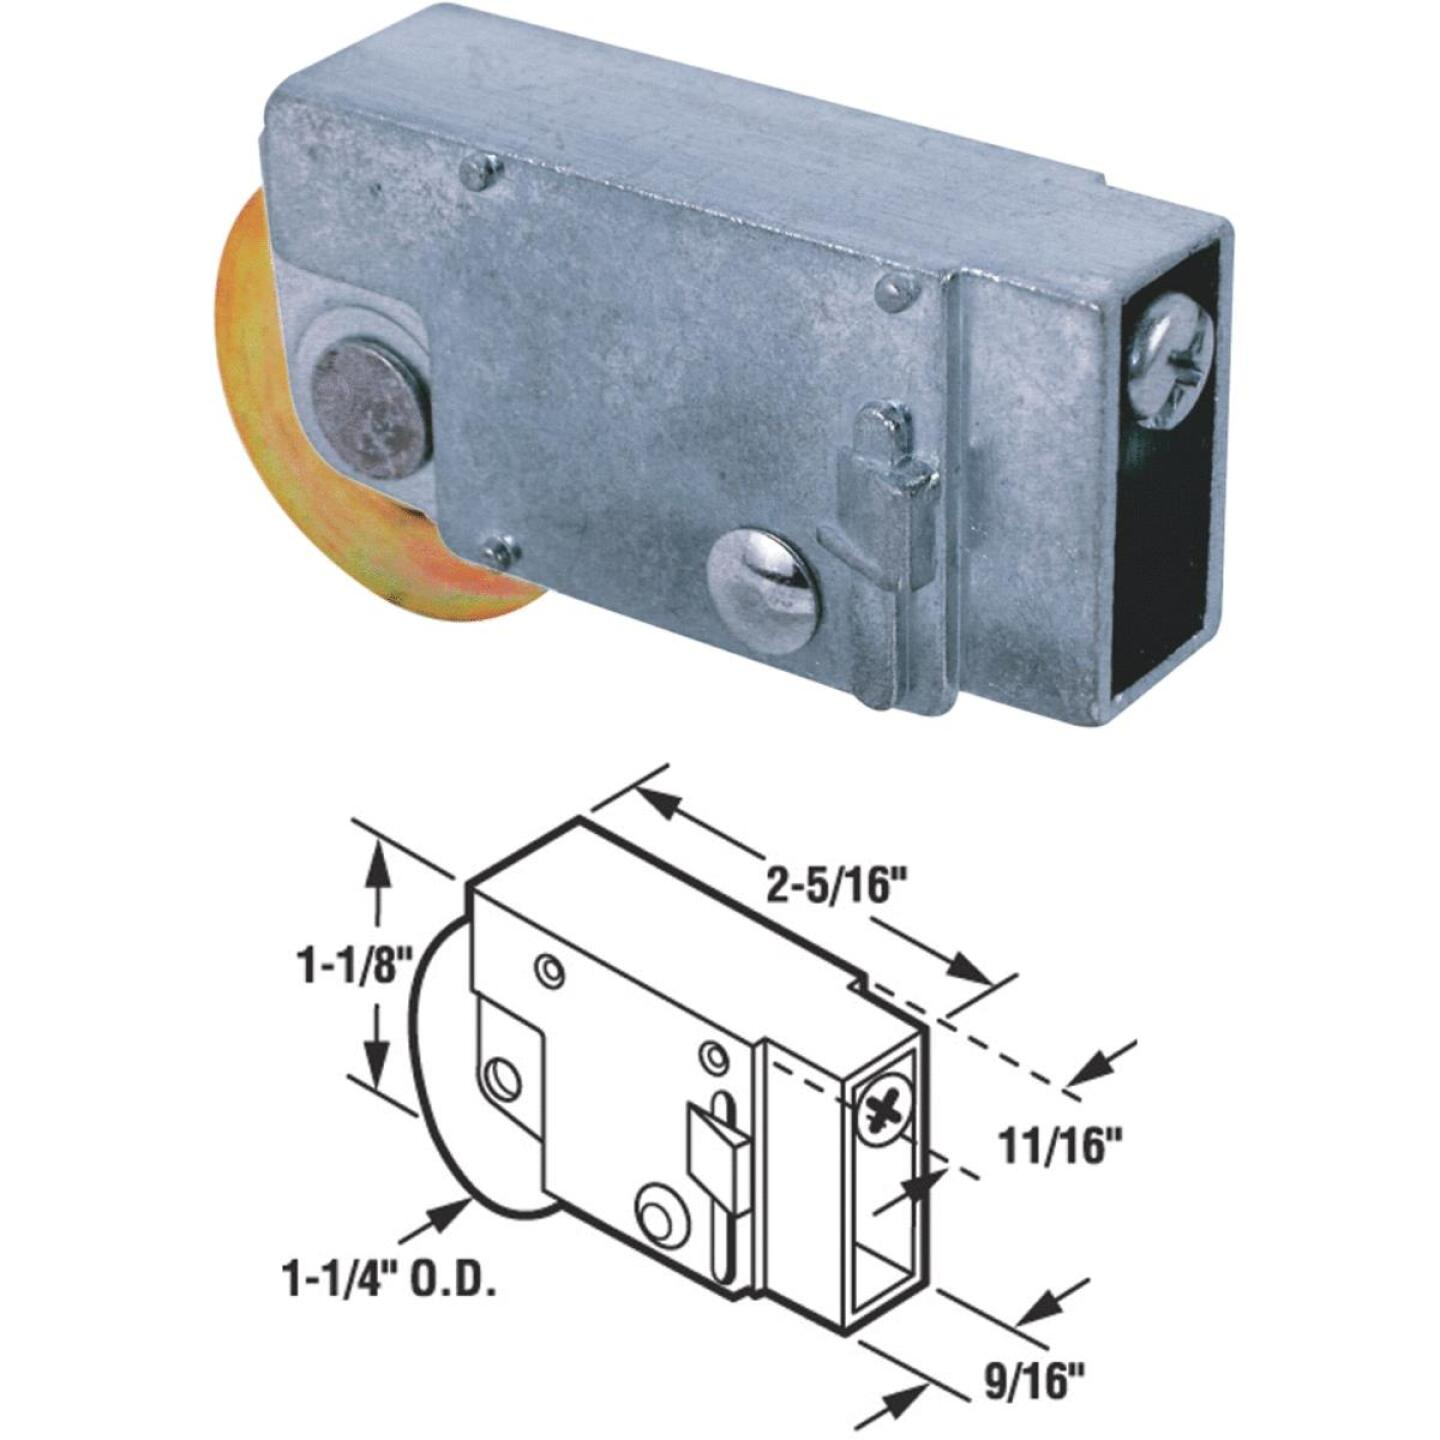 Prime-Line 1-1/4 In. Dia. x 9/16 In. W. x 2-5/16 In. L. Steel Patio Door Roller with Adjustable Diecast Housing Assembly Image 1